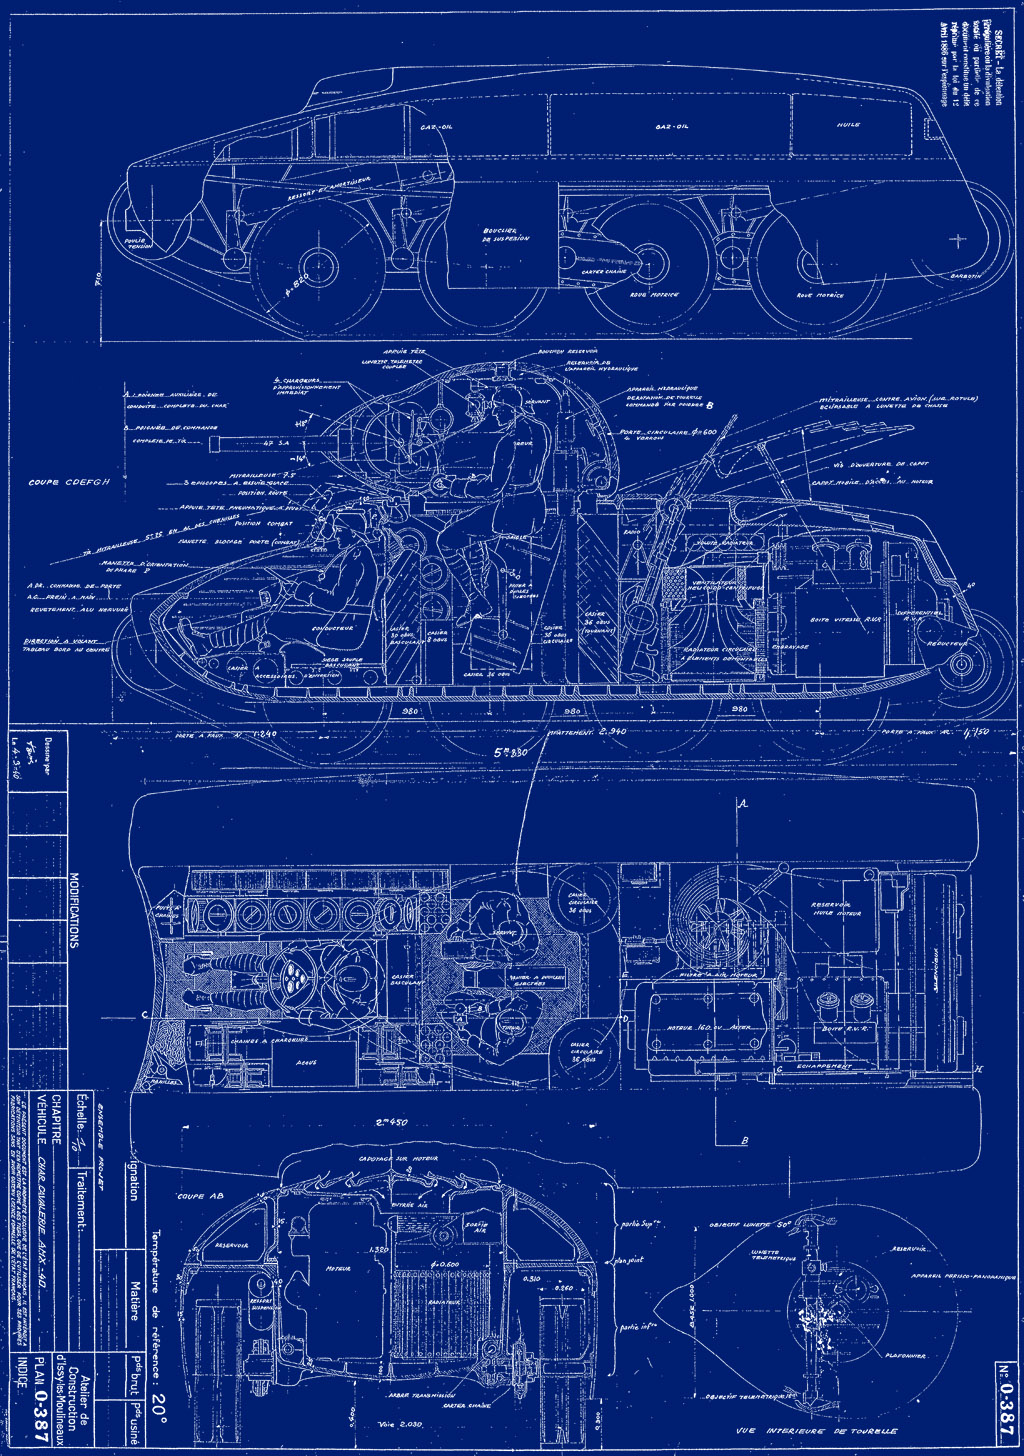 Blueprints For A Modern Four Bedroom Home: The Armored Patrol